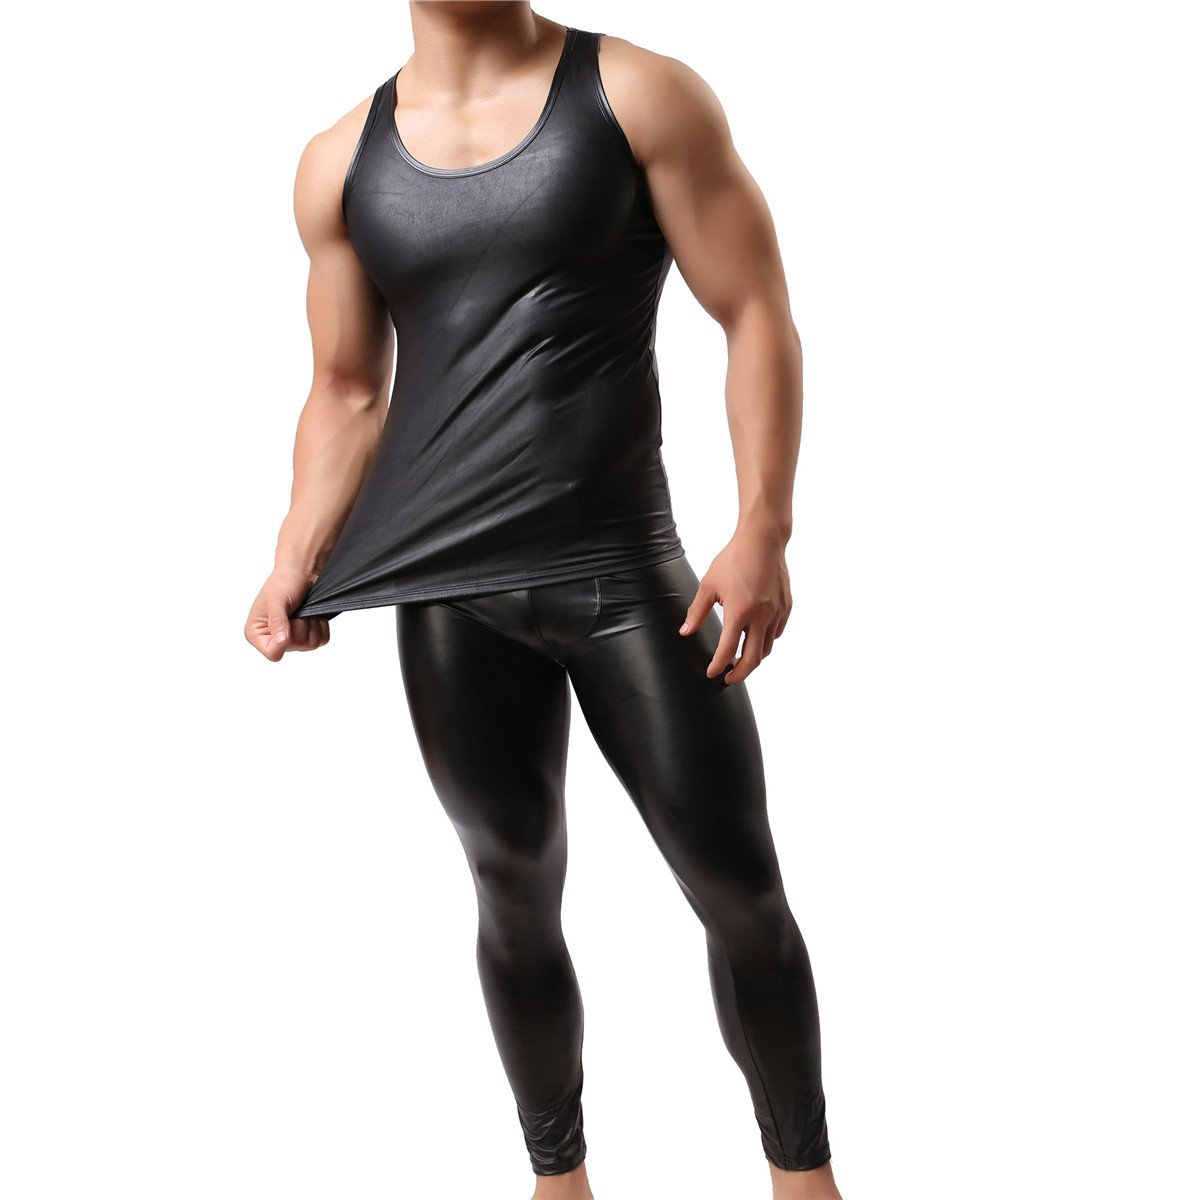 YFD Men's Sexy Fashion Vest Sleeveless Underwear Faux Leather Tank Top Undershirt C458